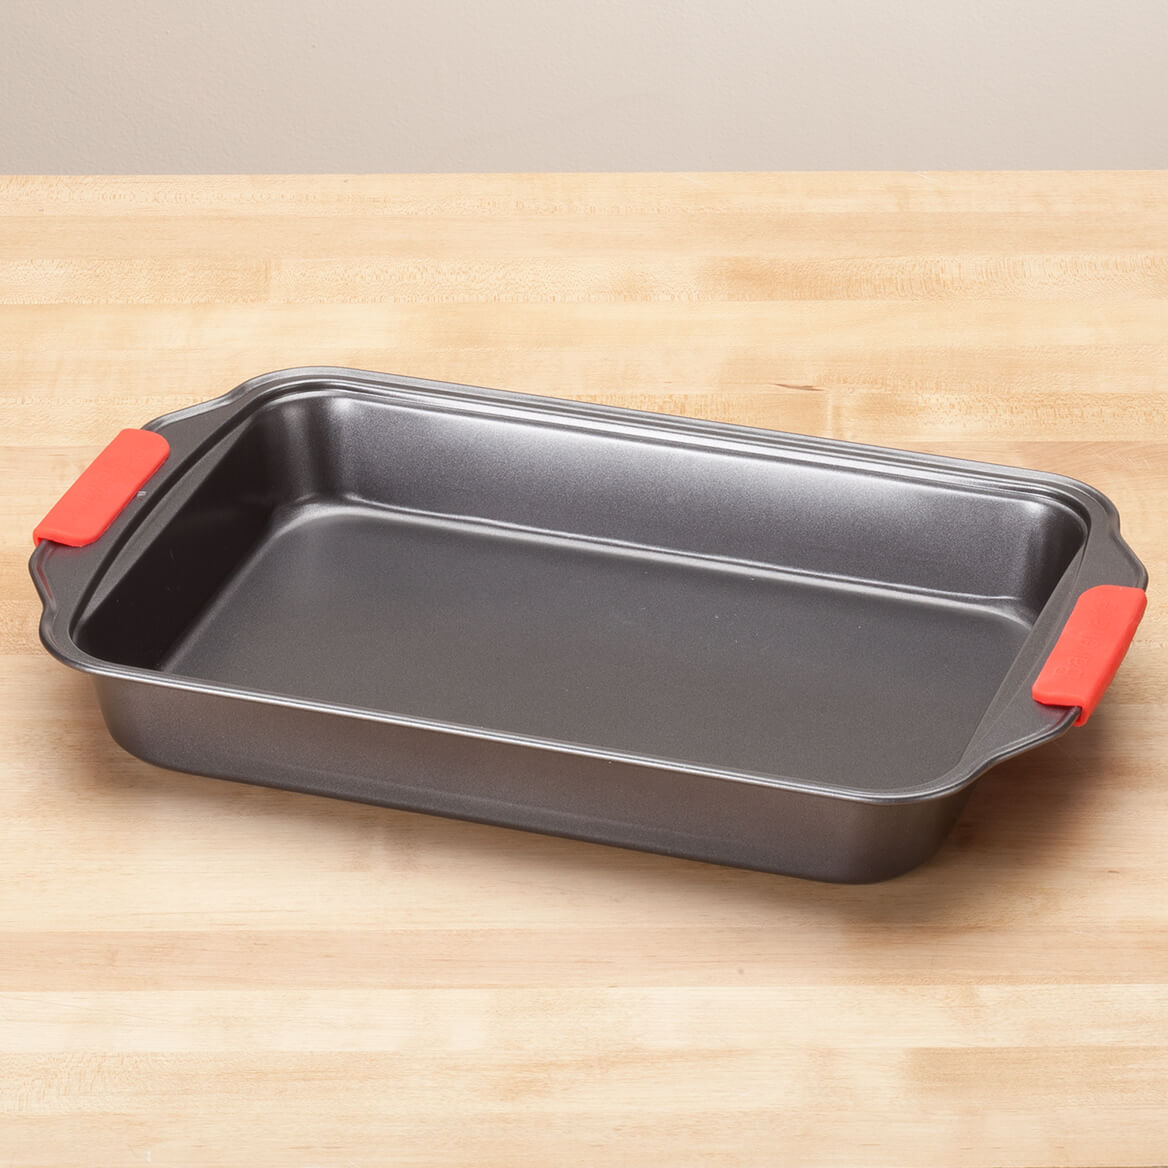 Heavy Duty 9x13 Pan with Red Silicone Handles by HSK-356754